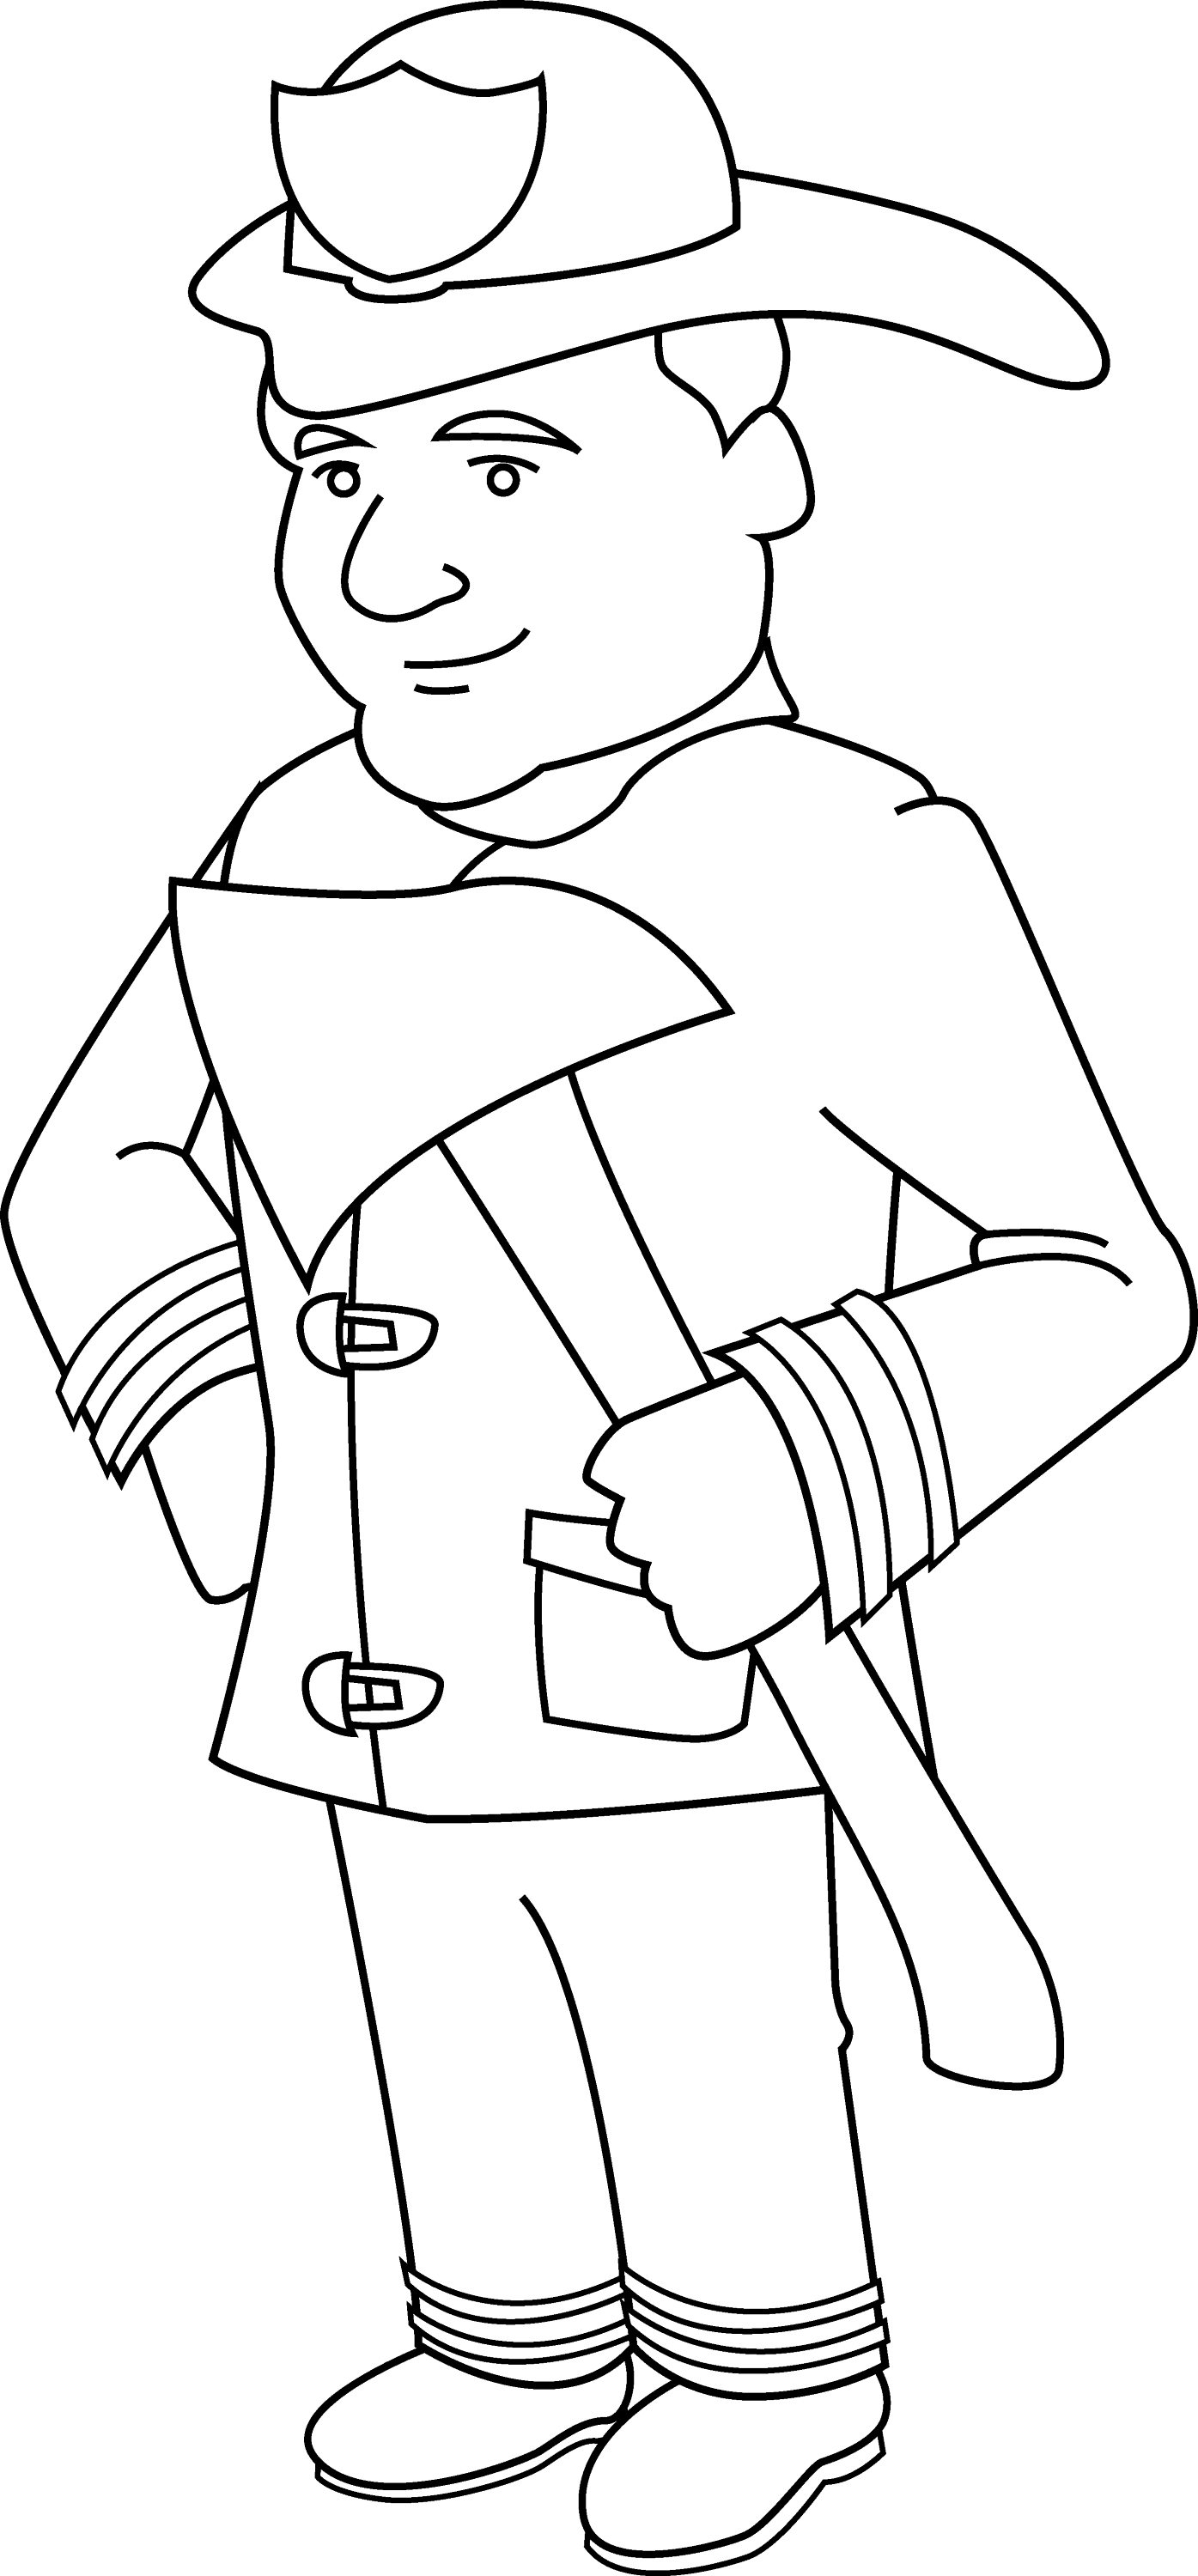 Firefighter Coloring Page - Free Clip Art